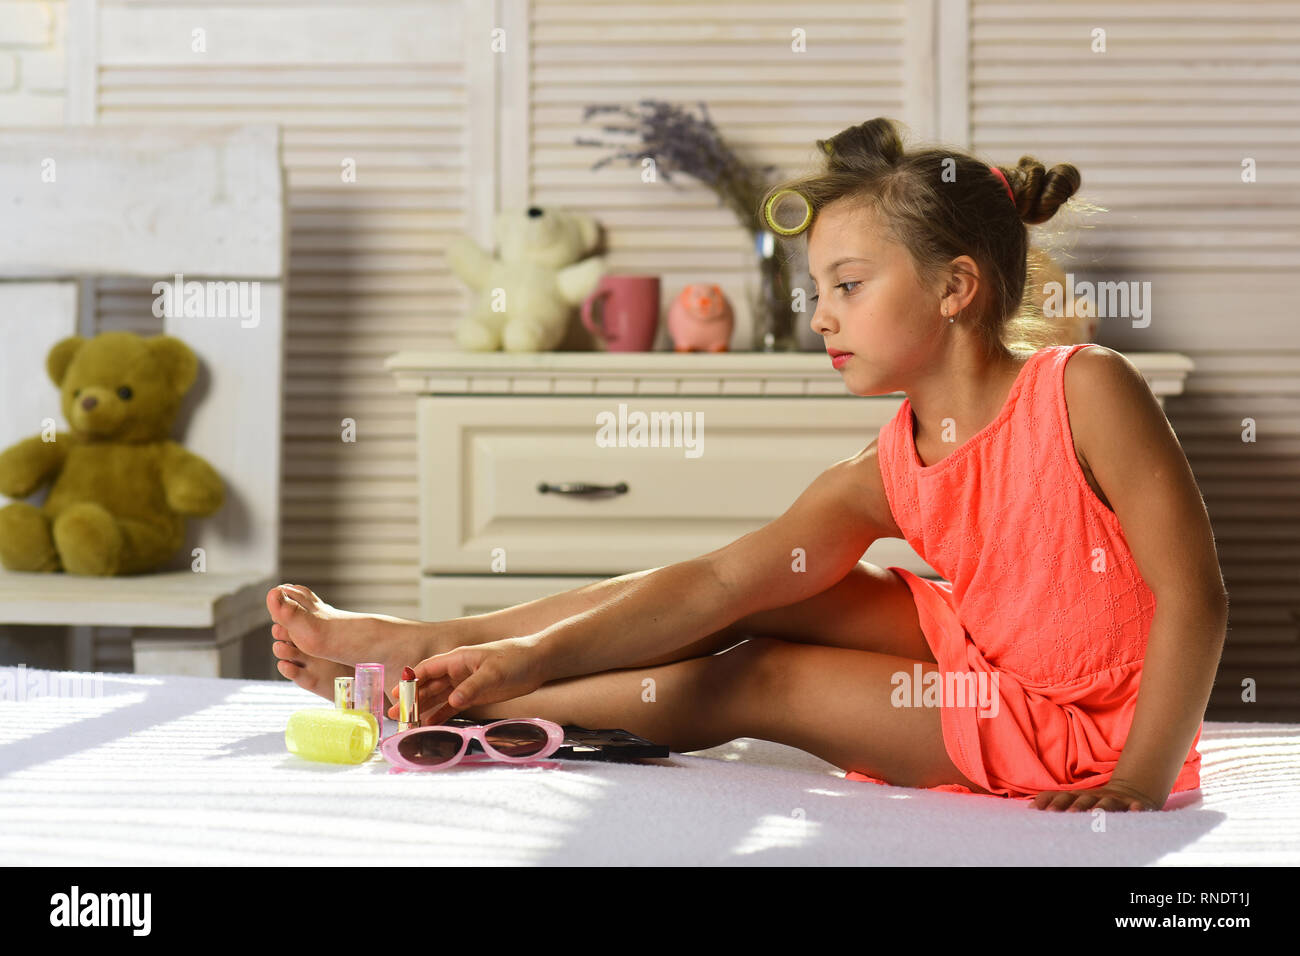 Kid with calm face and makeup accessories in childroom - Stock Image